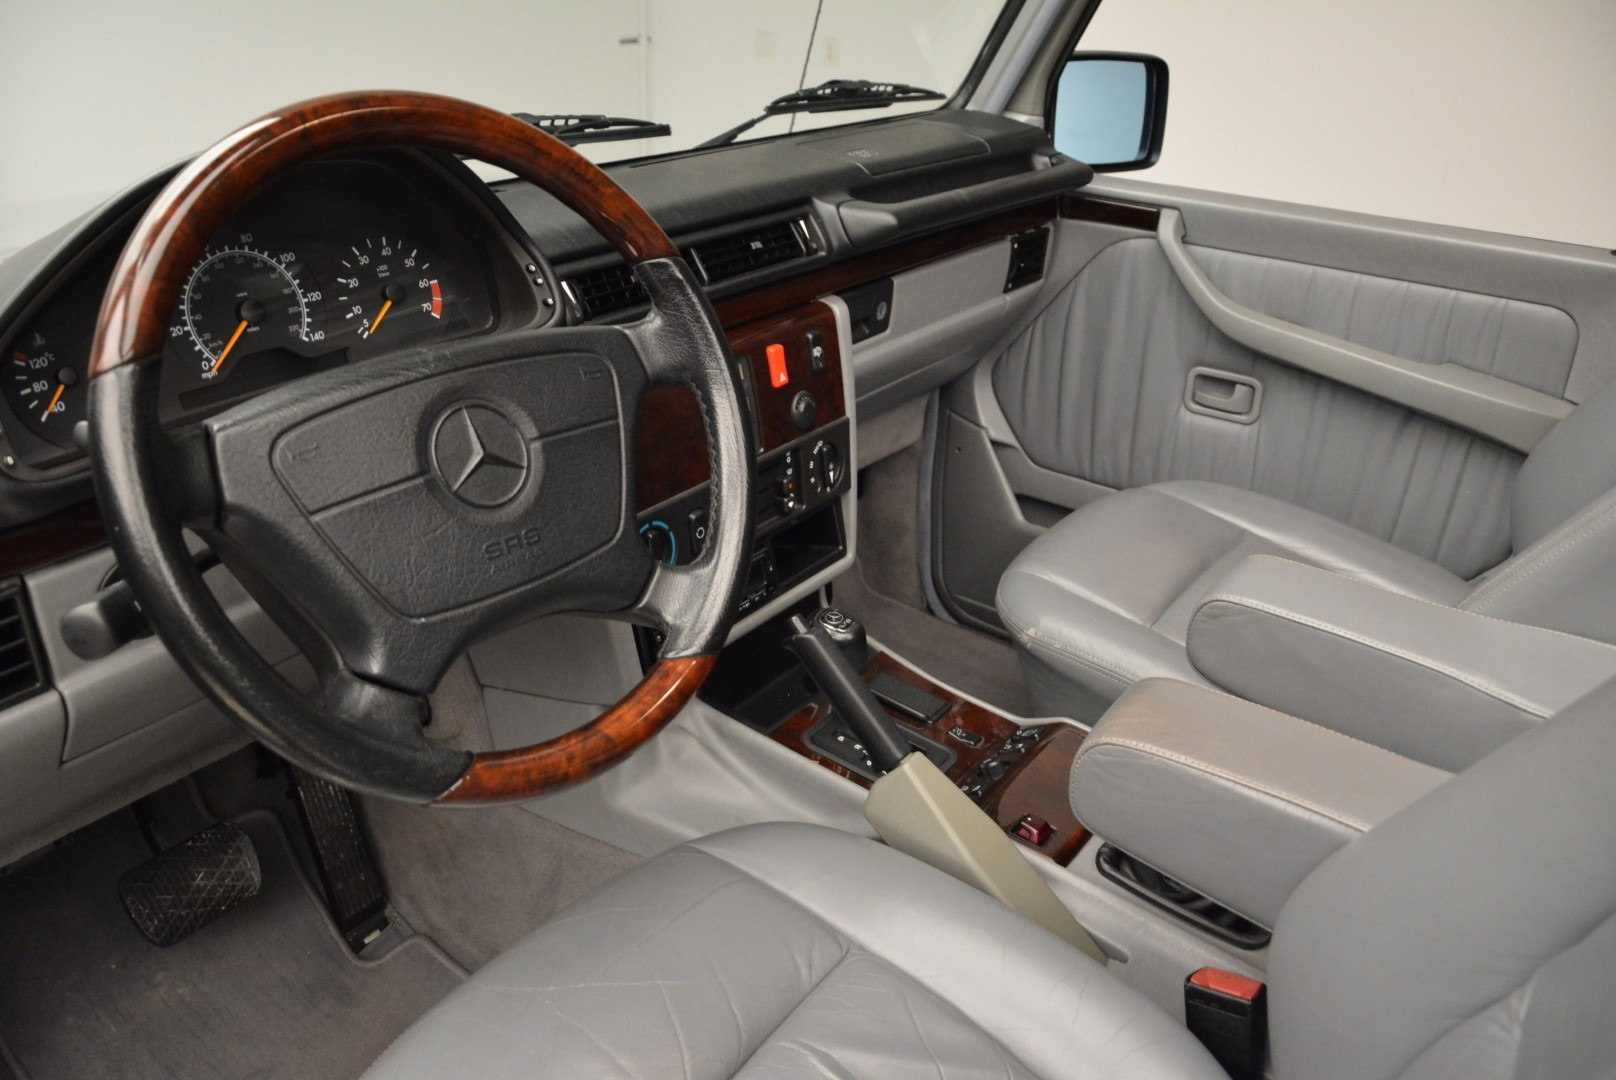 Used 1999 Mercedes Benz G500 Cabriolet For Sale In Greenwich, CT 1961_p22